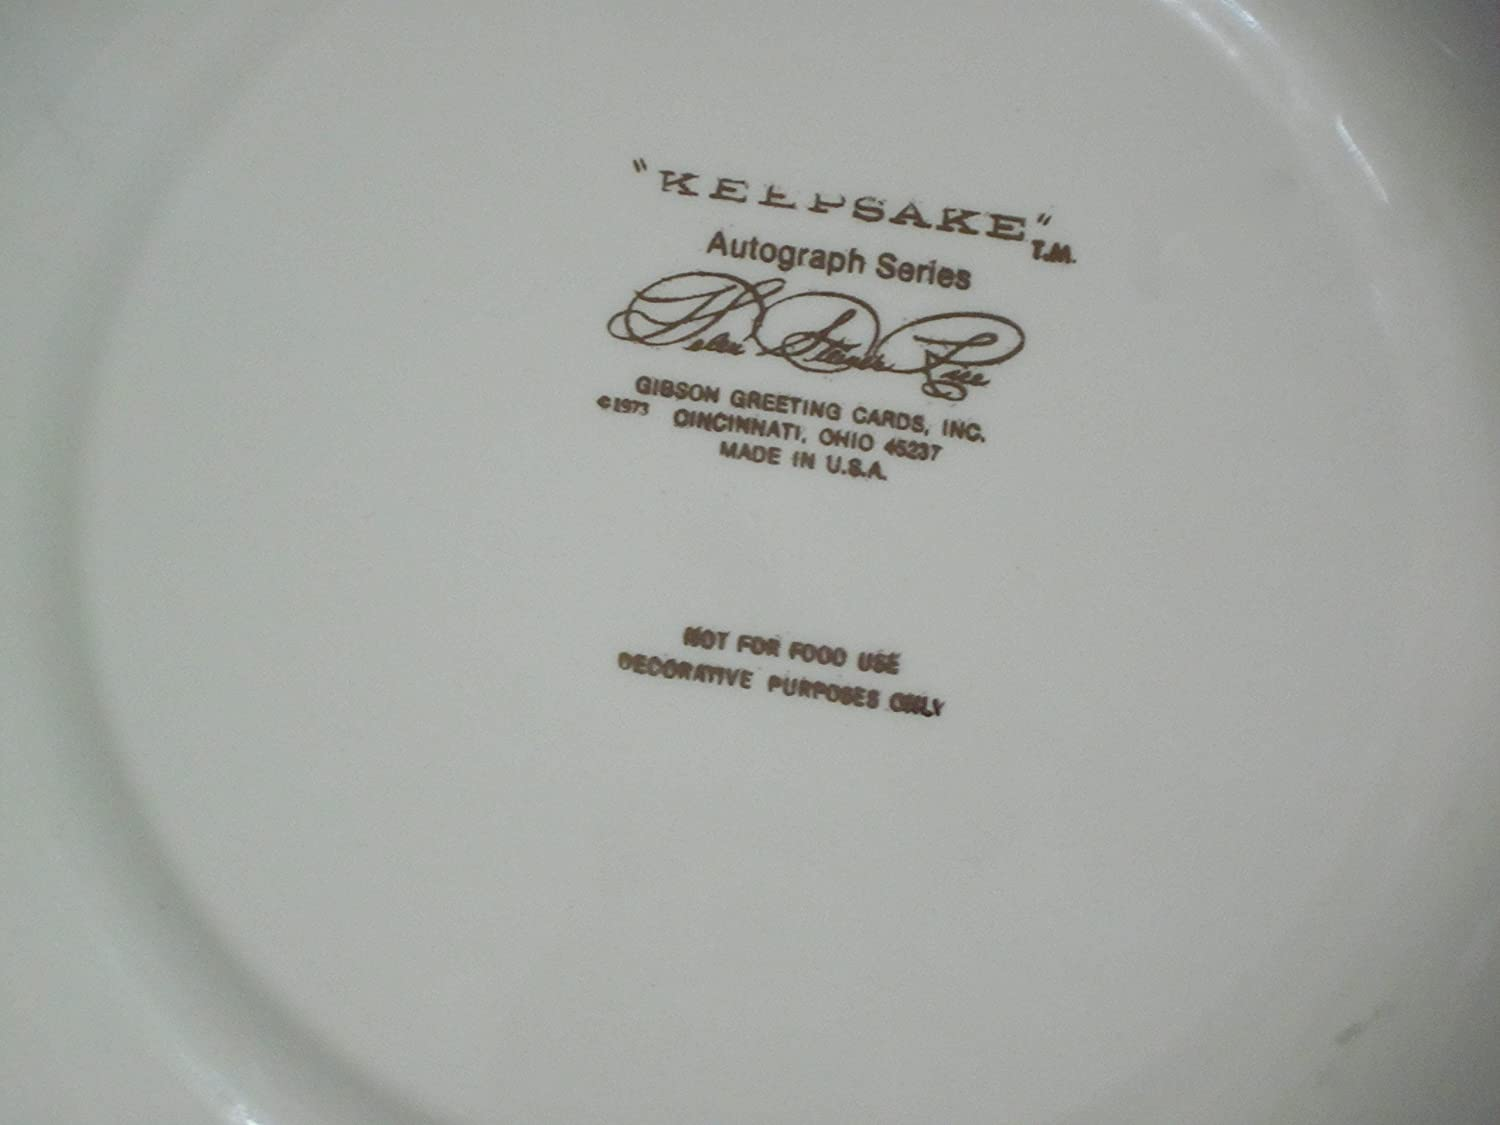 Amazon keepsake autograph series flowers leave their amazon keepsake autograph series flowers leave their fragrance on the hand that bestows them helen steiner rice 10 decorative plate everything m4hsunfo Choice Image